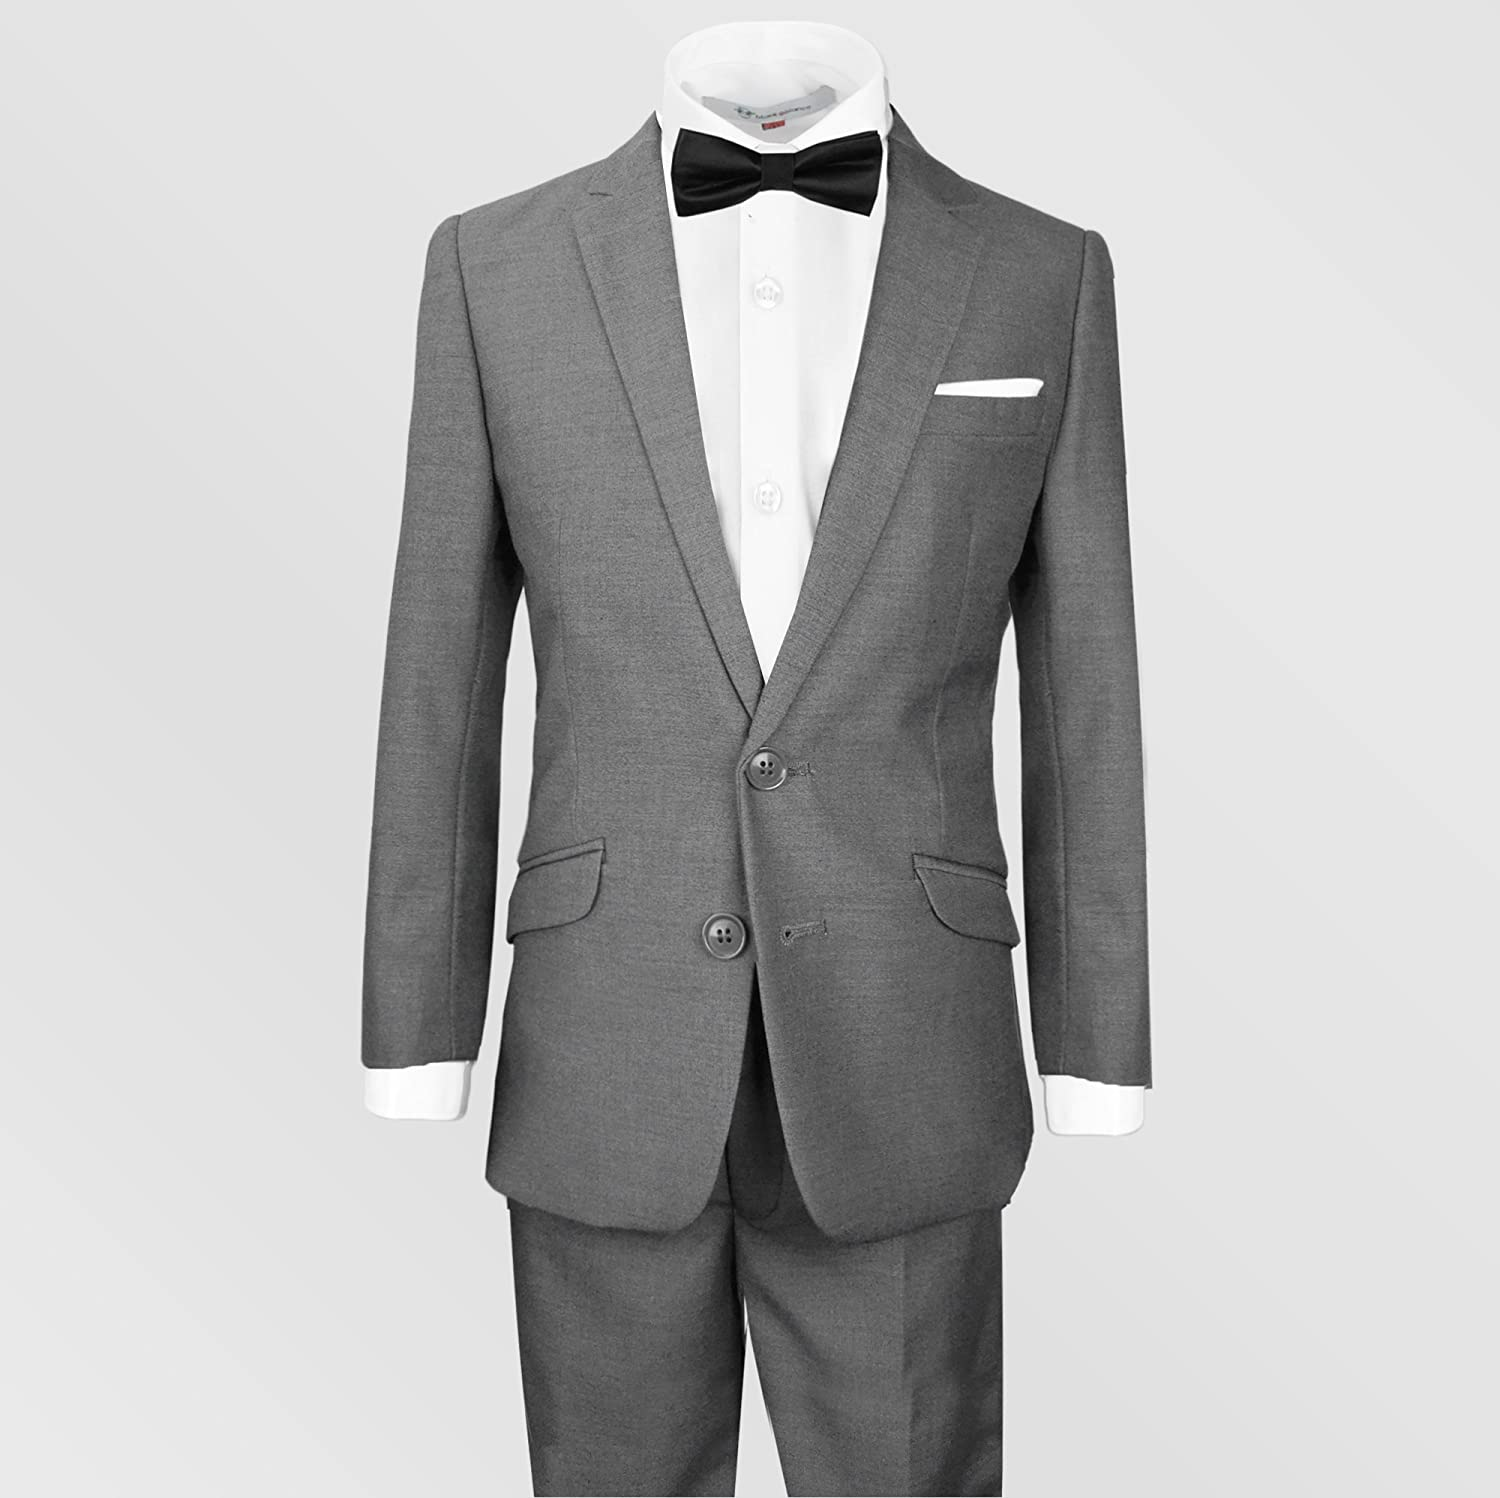 8956d2df82 Amazon.com: Black n Bianco Signature Boys' Slim Tuxedo Suit with Bow Tie  (14, Dark Gray (Charcoal)): Clothing